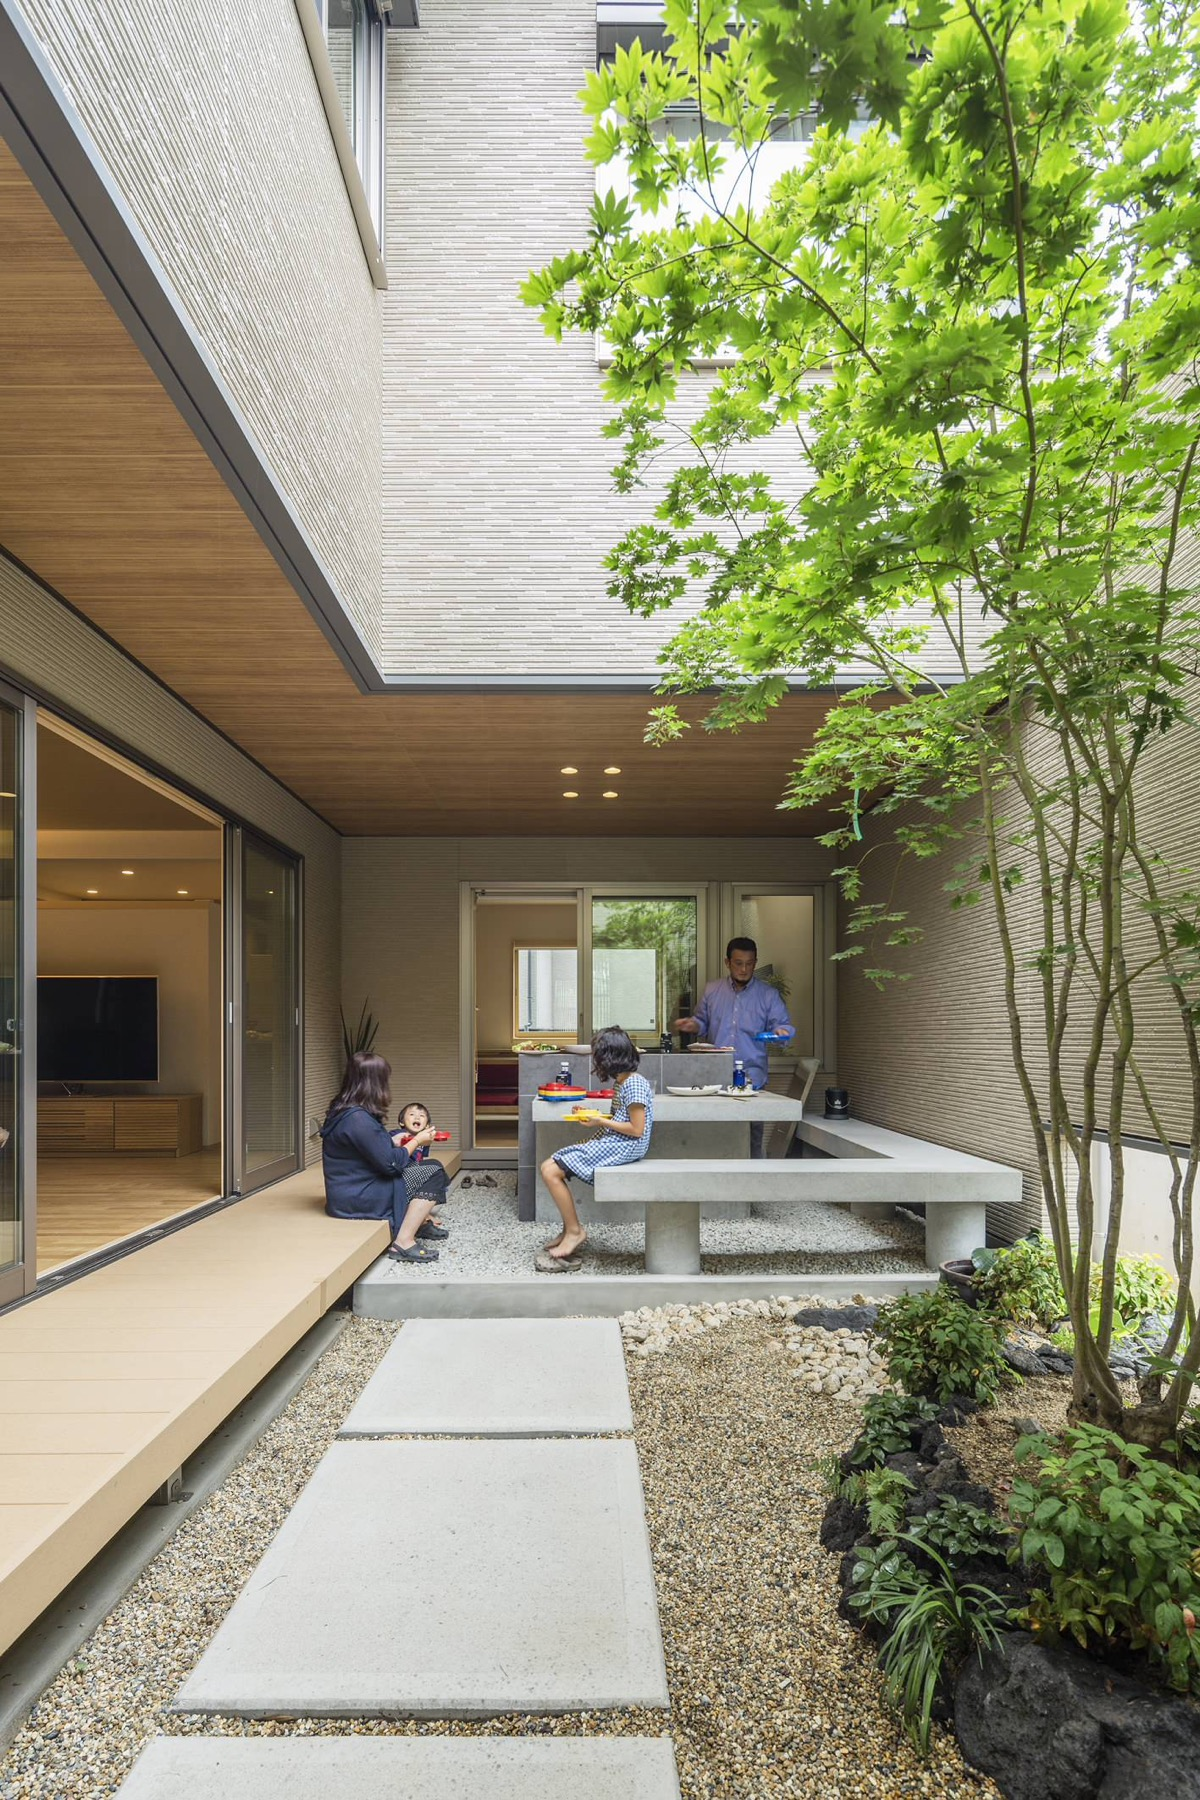 51 Captivating Courtyard Designs That Make Us Go Wow on Courtyard Patio Ideas id=91945